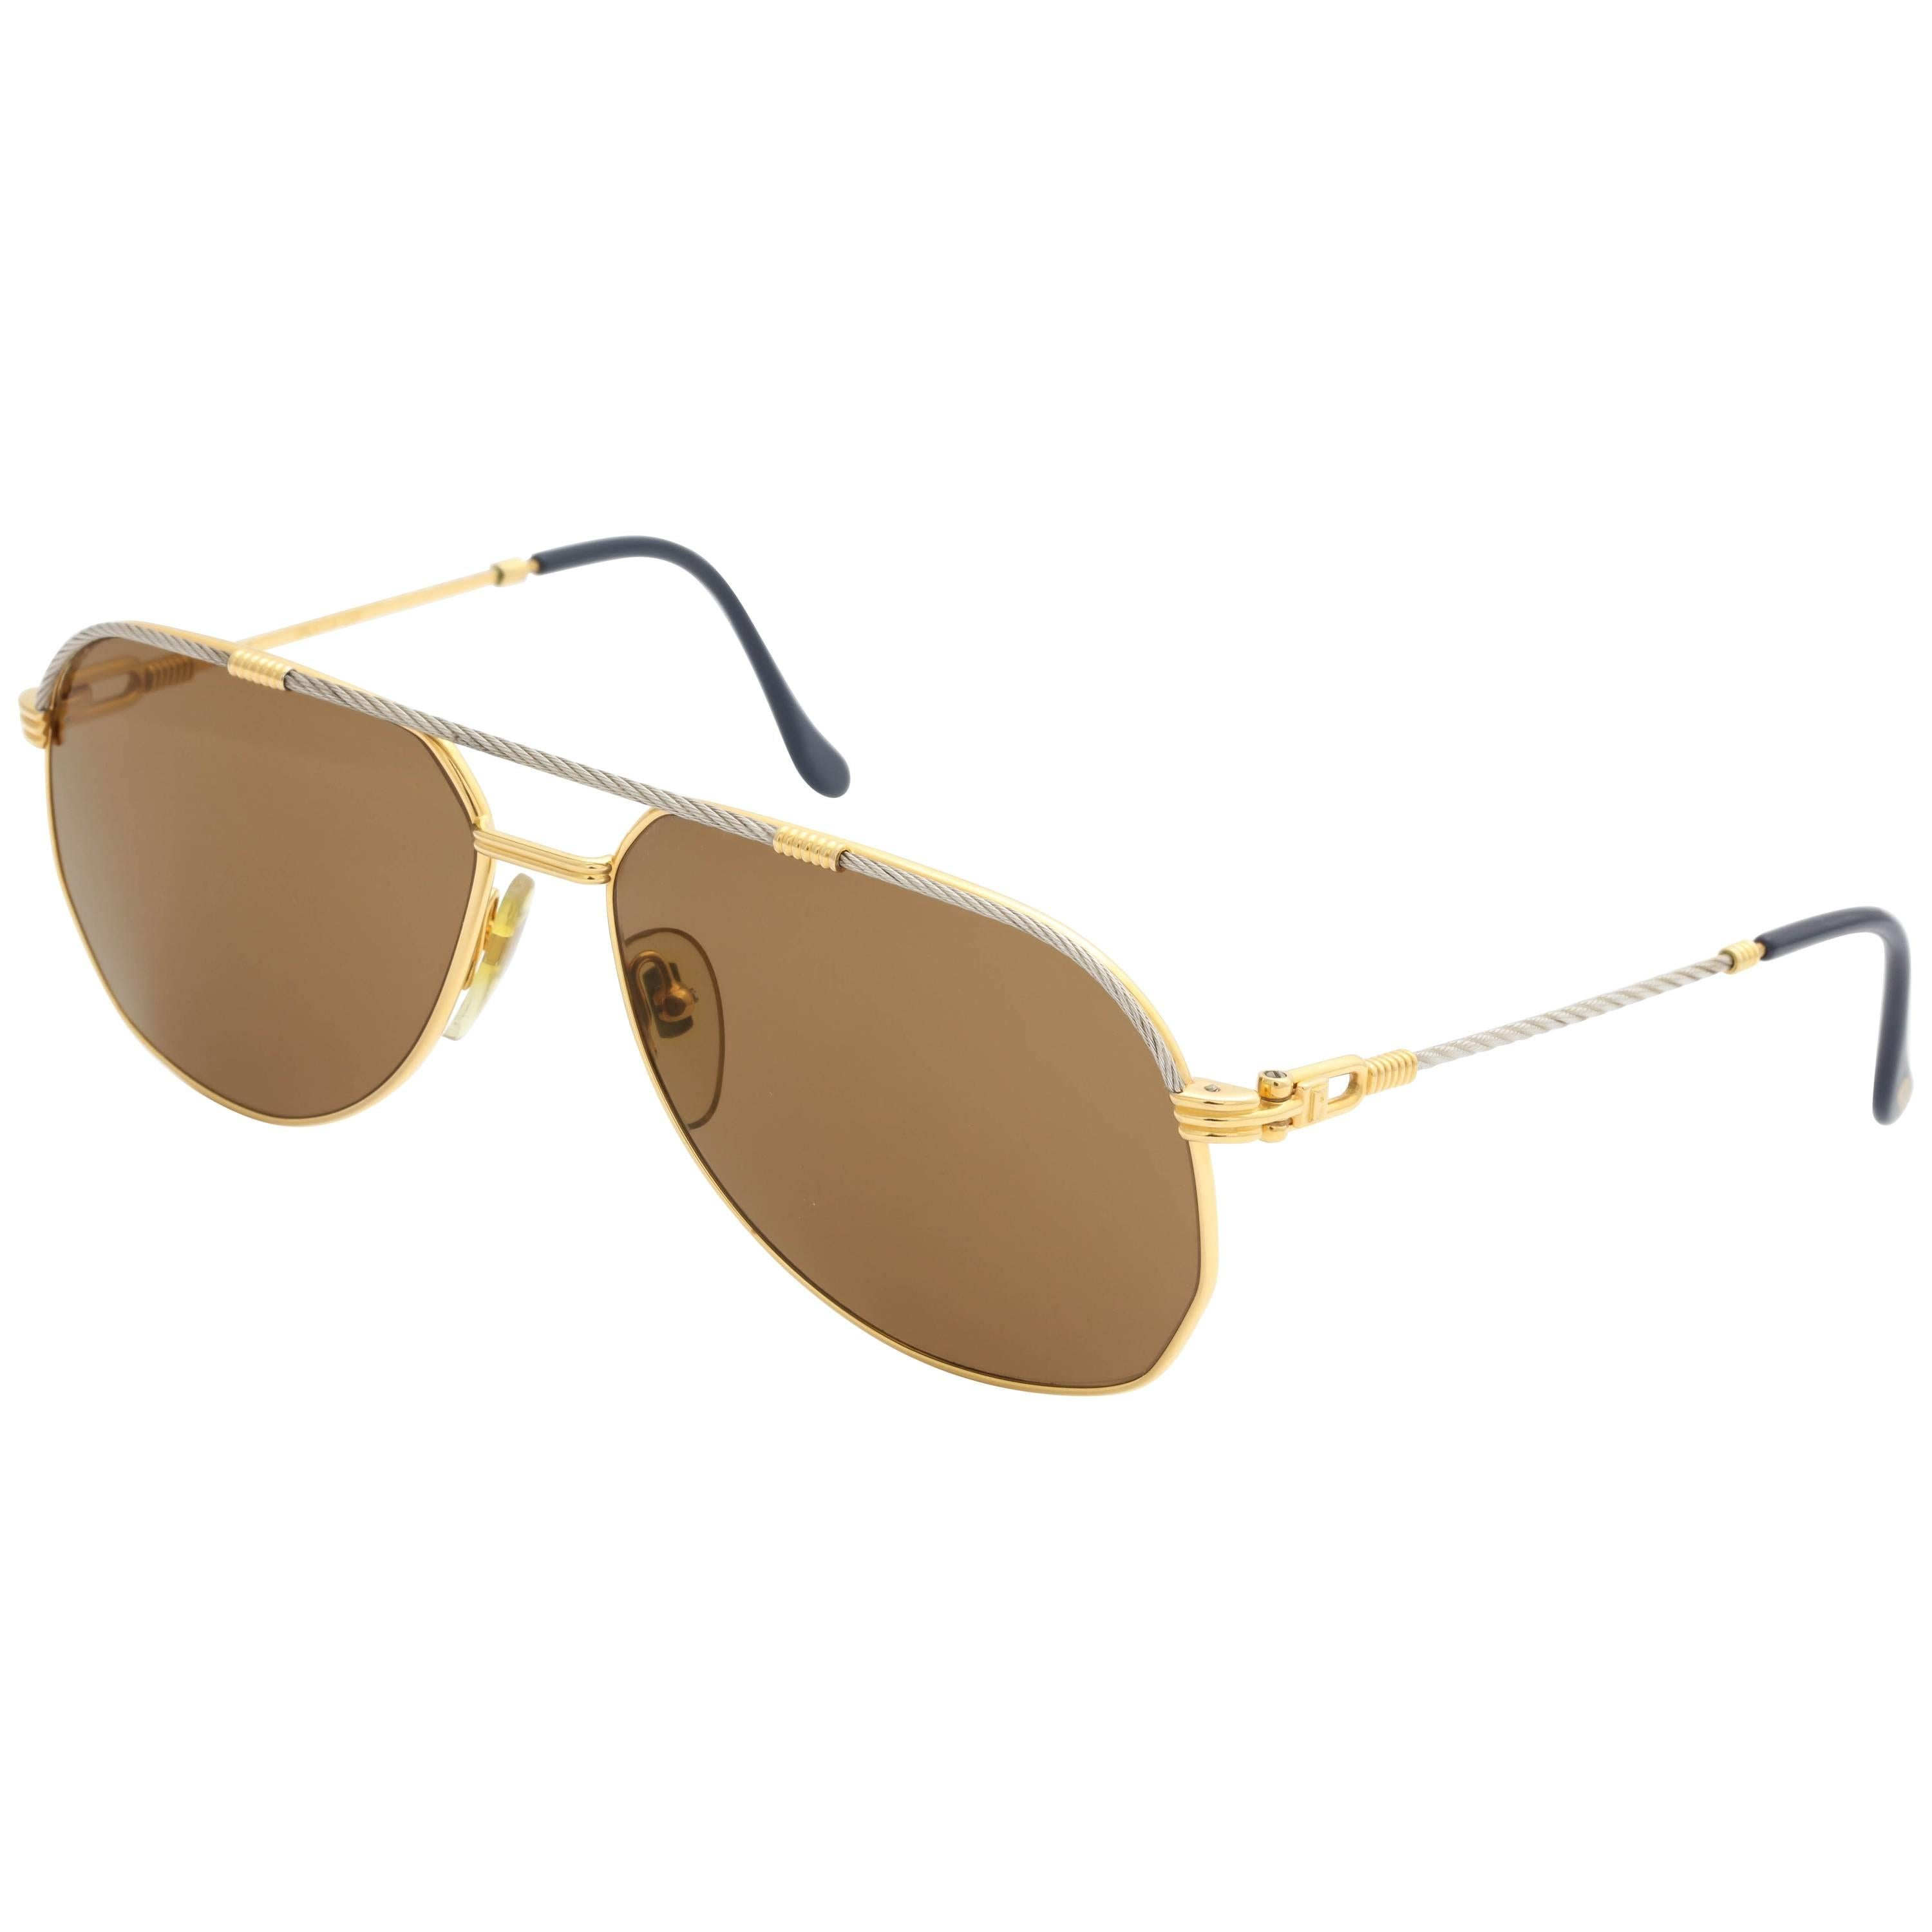 f2c5ca52a1 Vintage Sunglasses For Sale in New York City - 1stdibs - Page 3